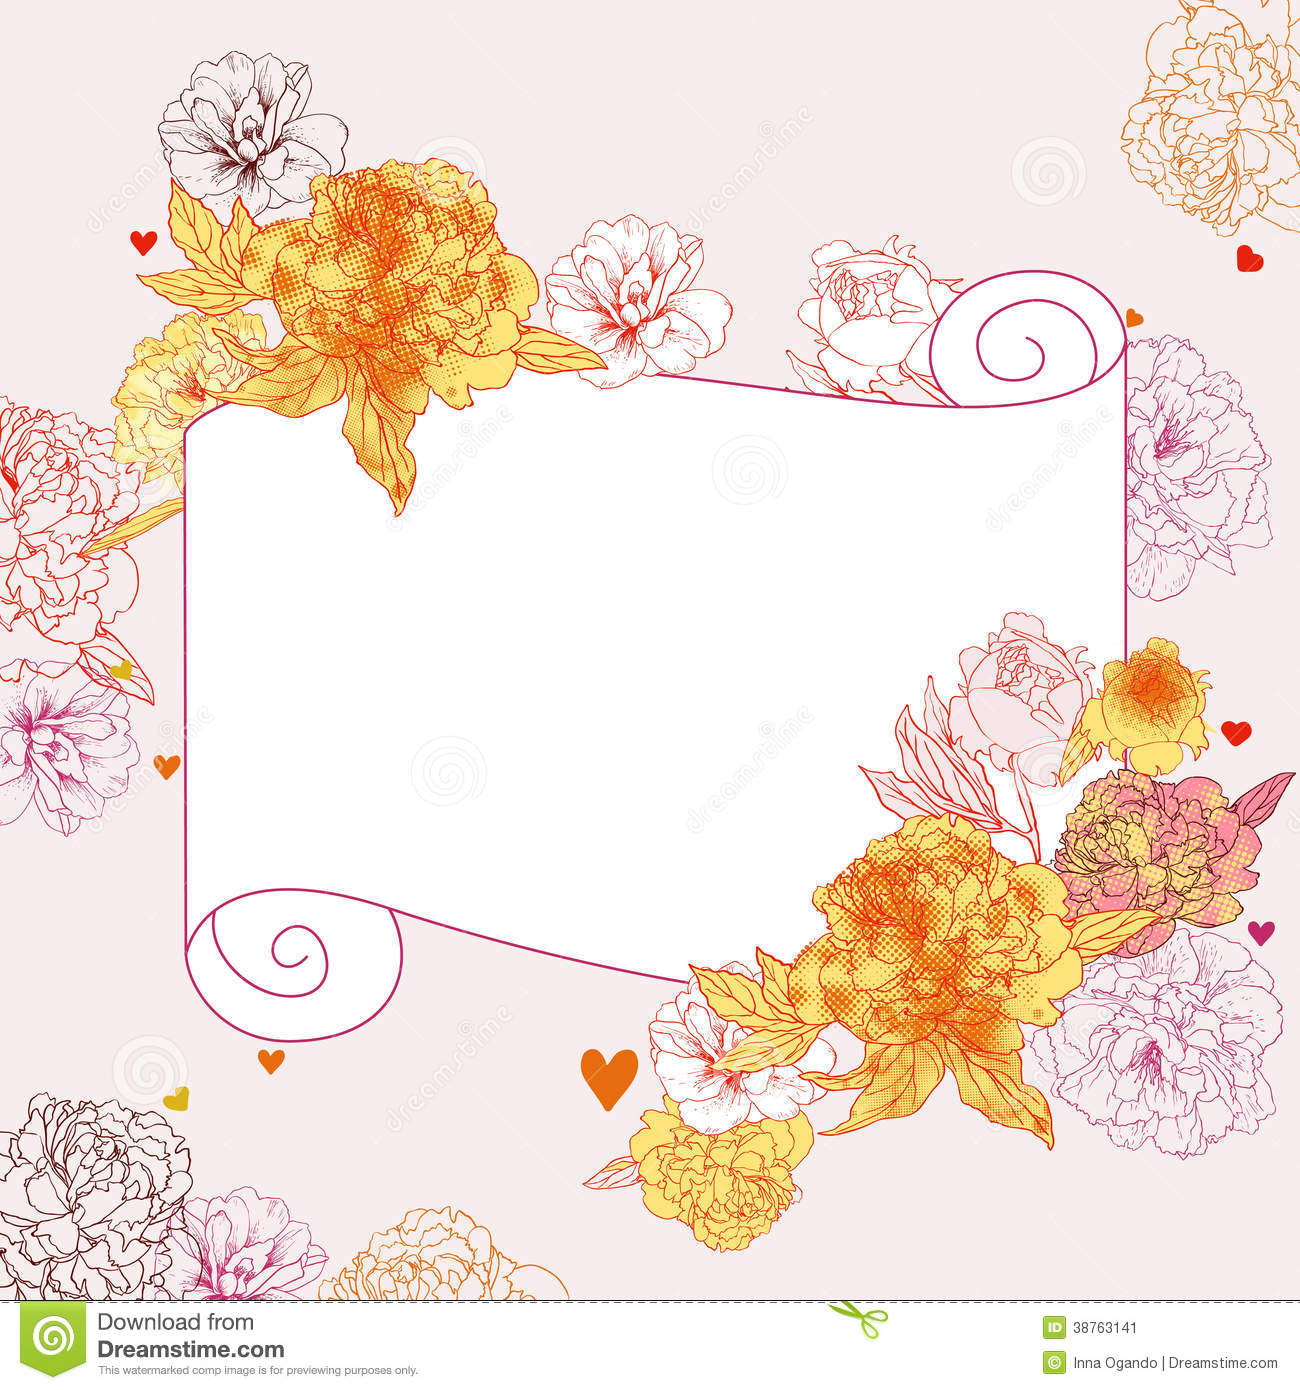 Blank invitation card for wedding design yaseen for floral frame stock imageimage 38763141 blank invitation card stopboris Image collections